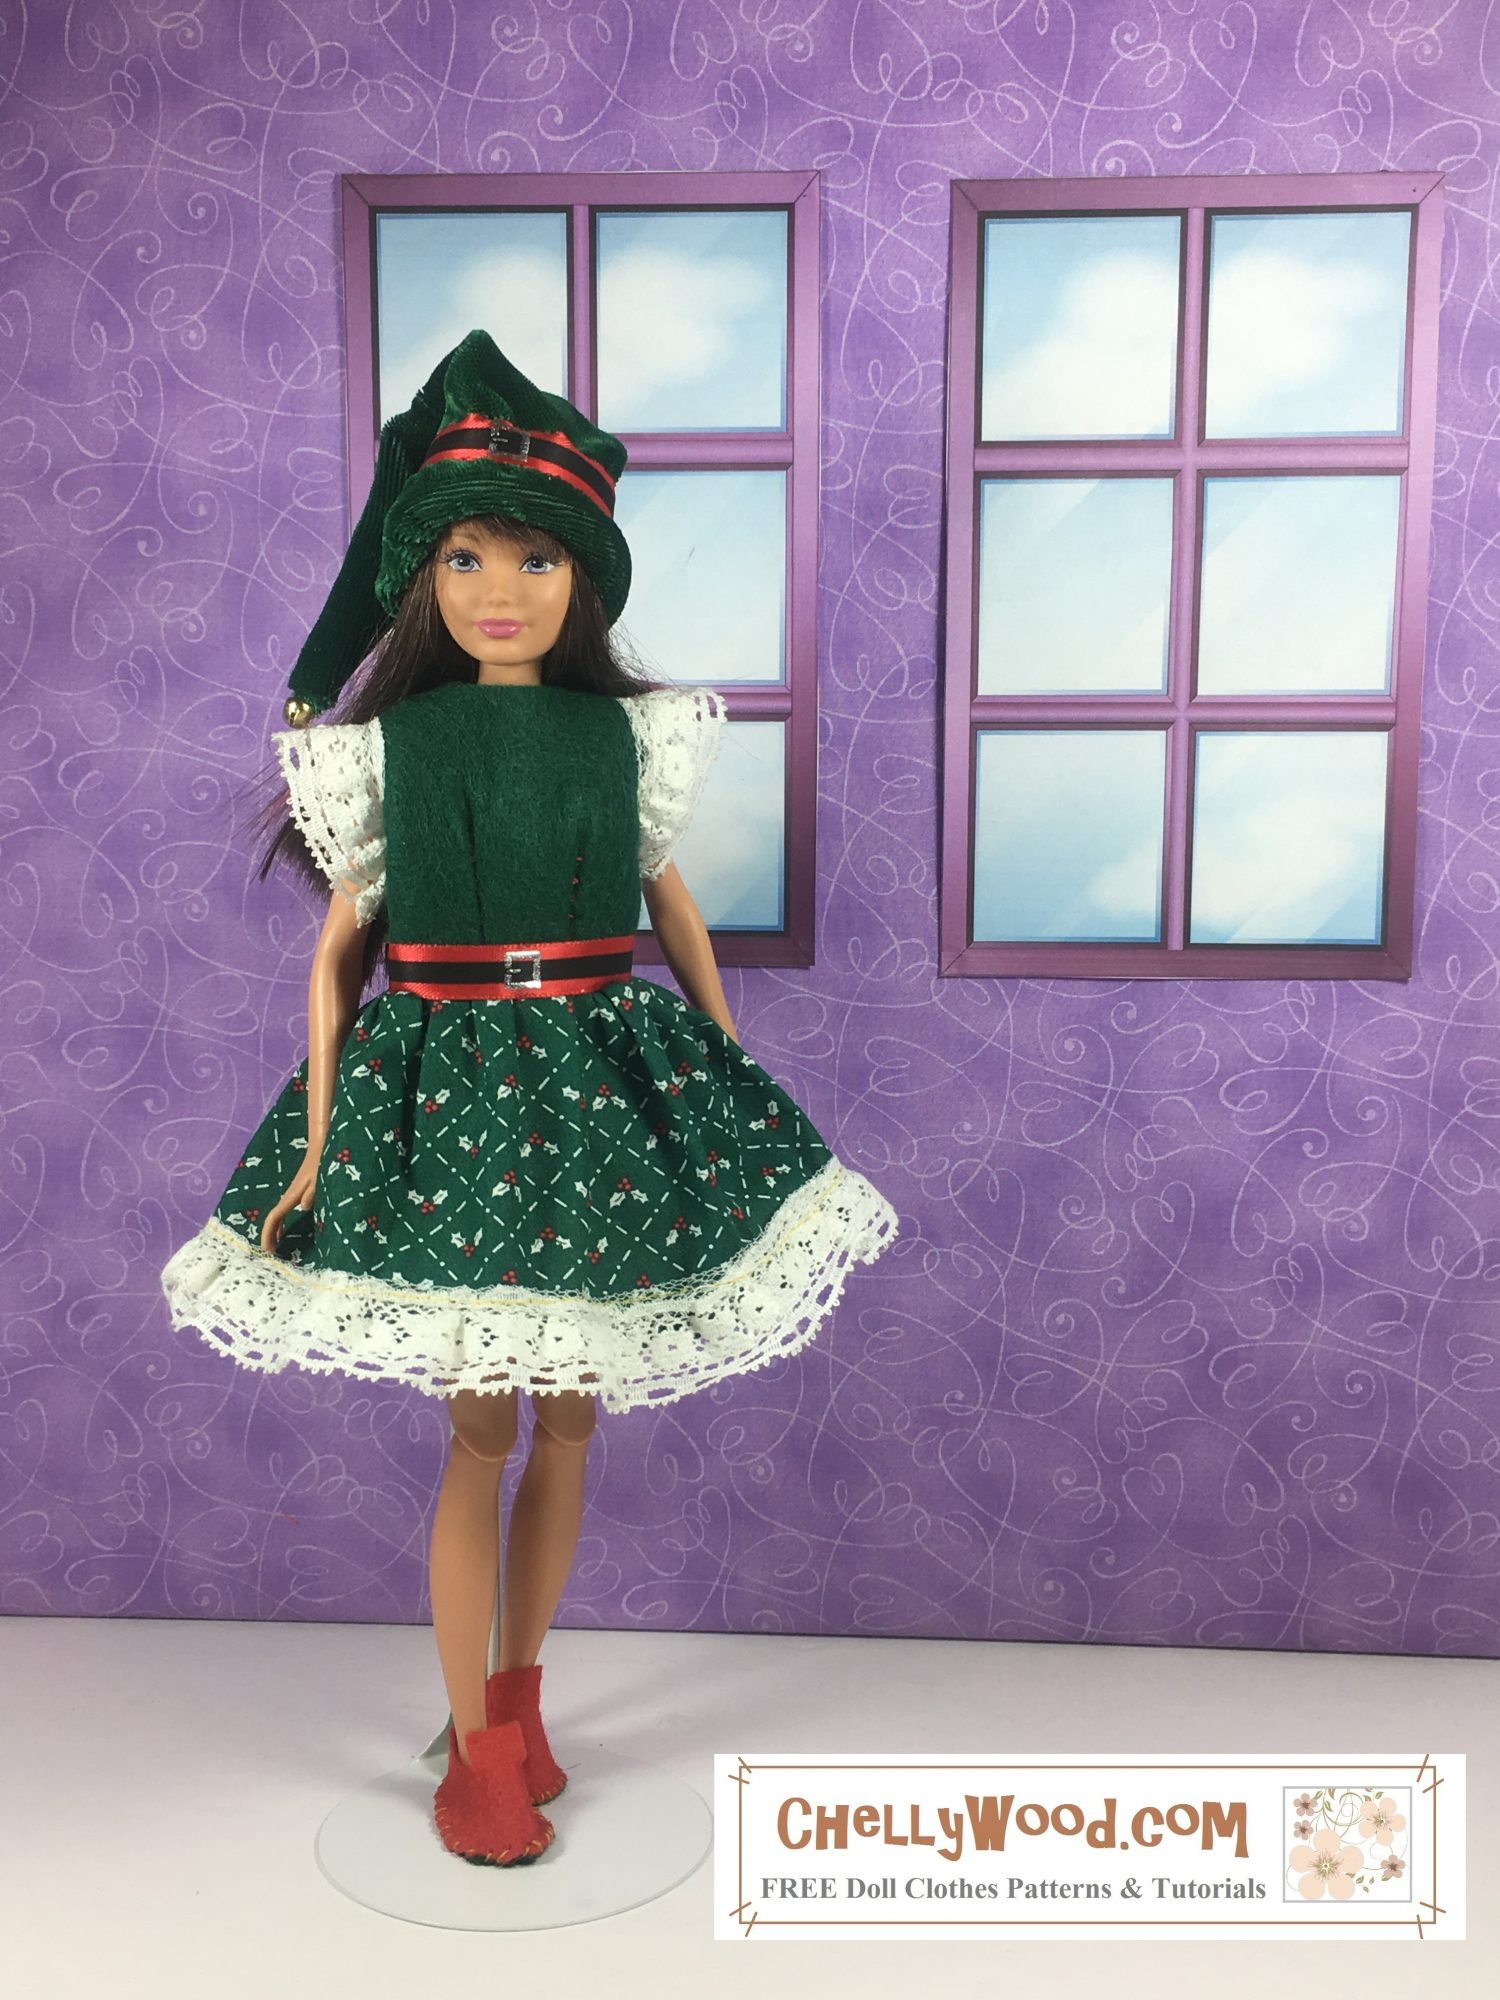 A Mattel Skipper doll models a handmade holiday dress with an elf hat and elf boots. The dress has a green felt bodice, lace sleeves,  a green print cotton skirt that flares with white lace trim, and a Santa ribbon belt.